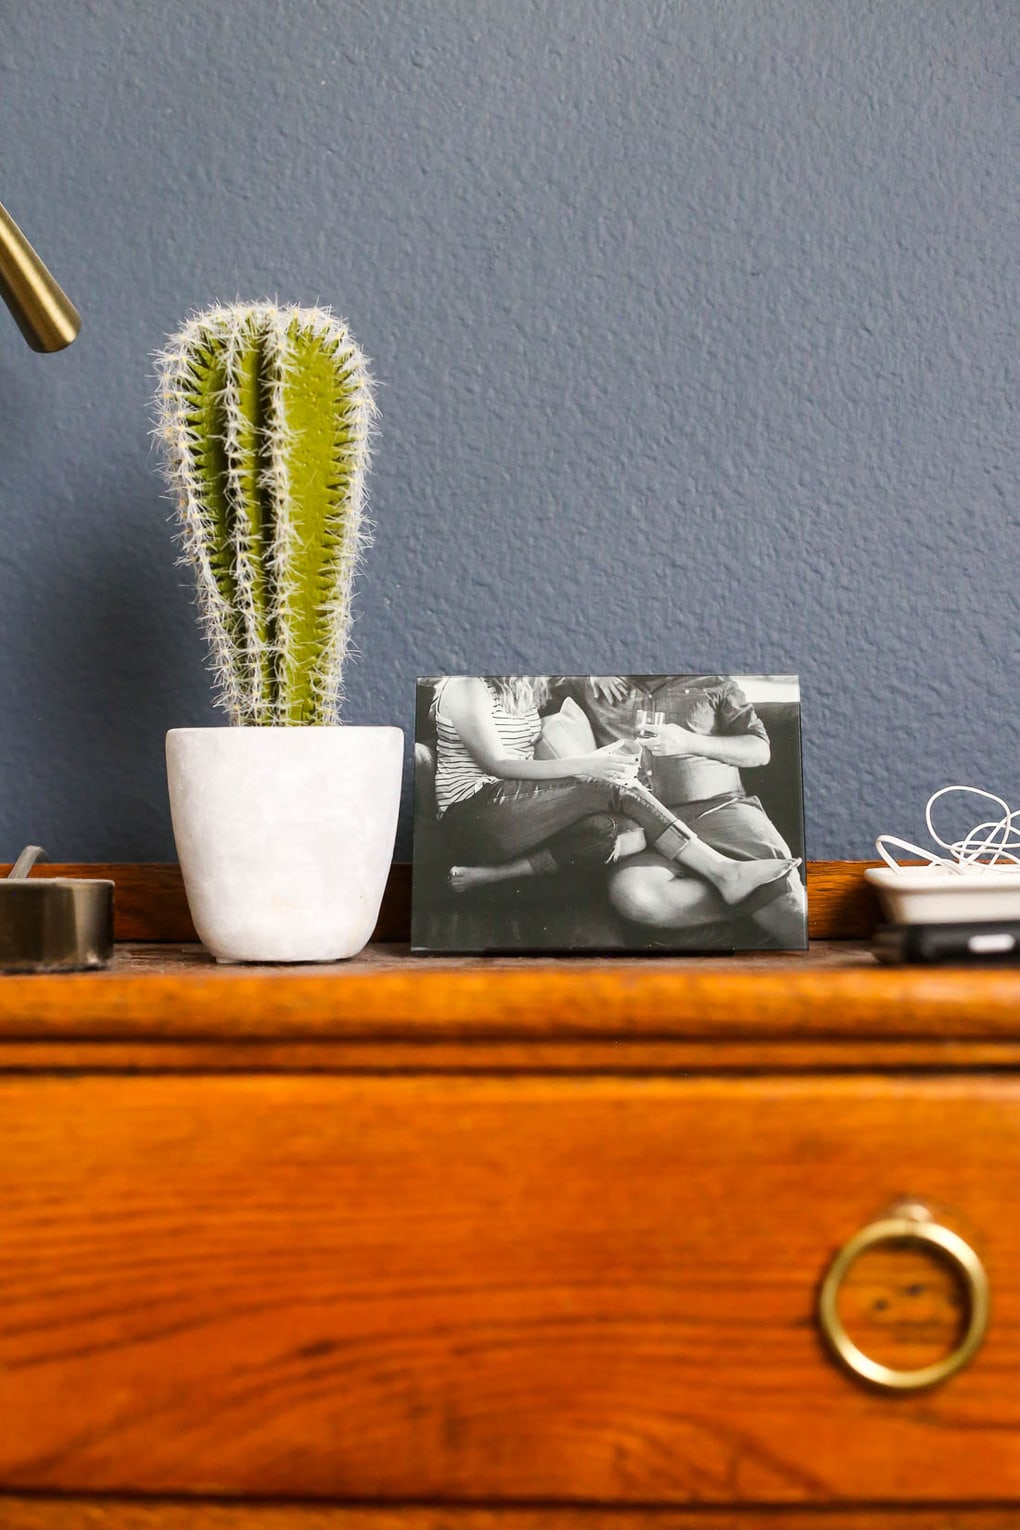 Family photo display ideas - Fracture glass prints